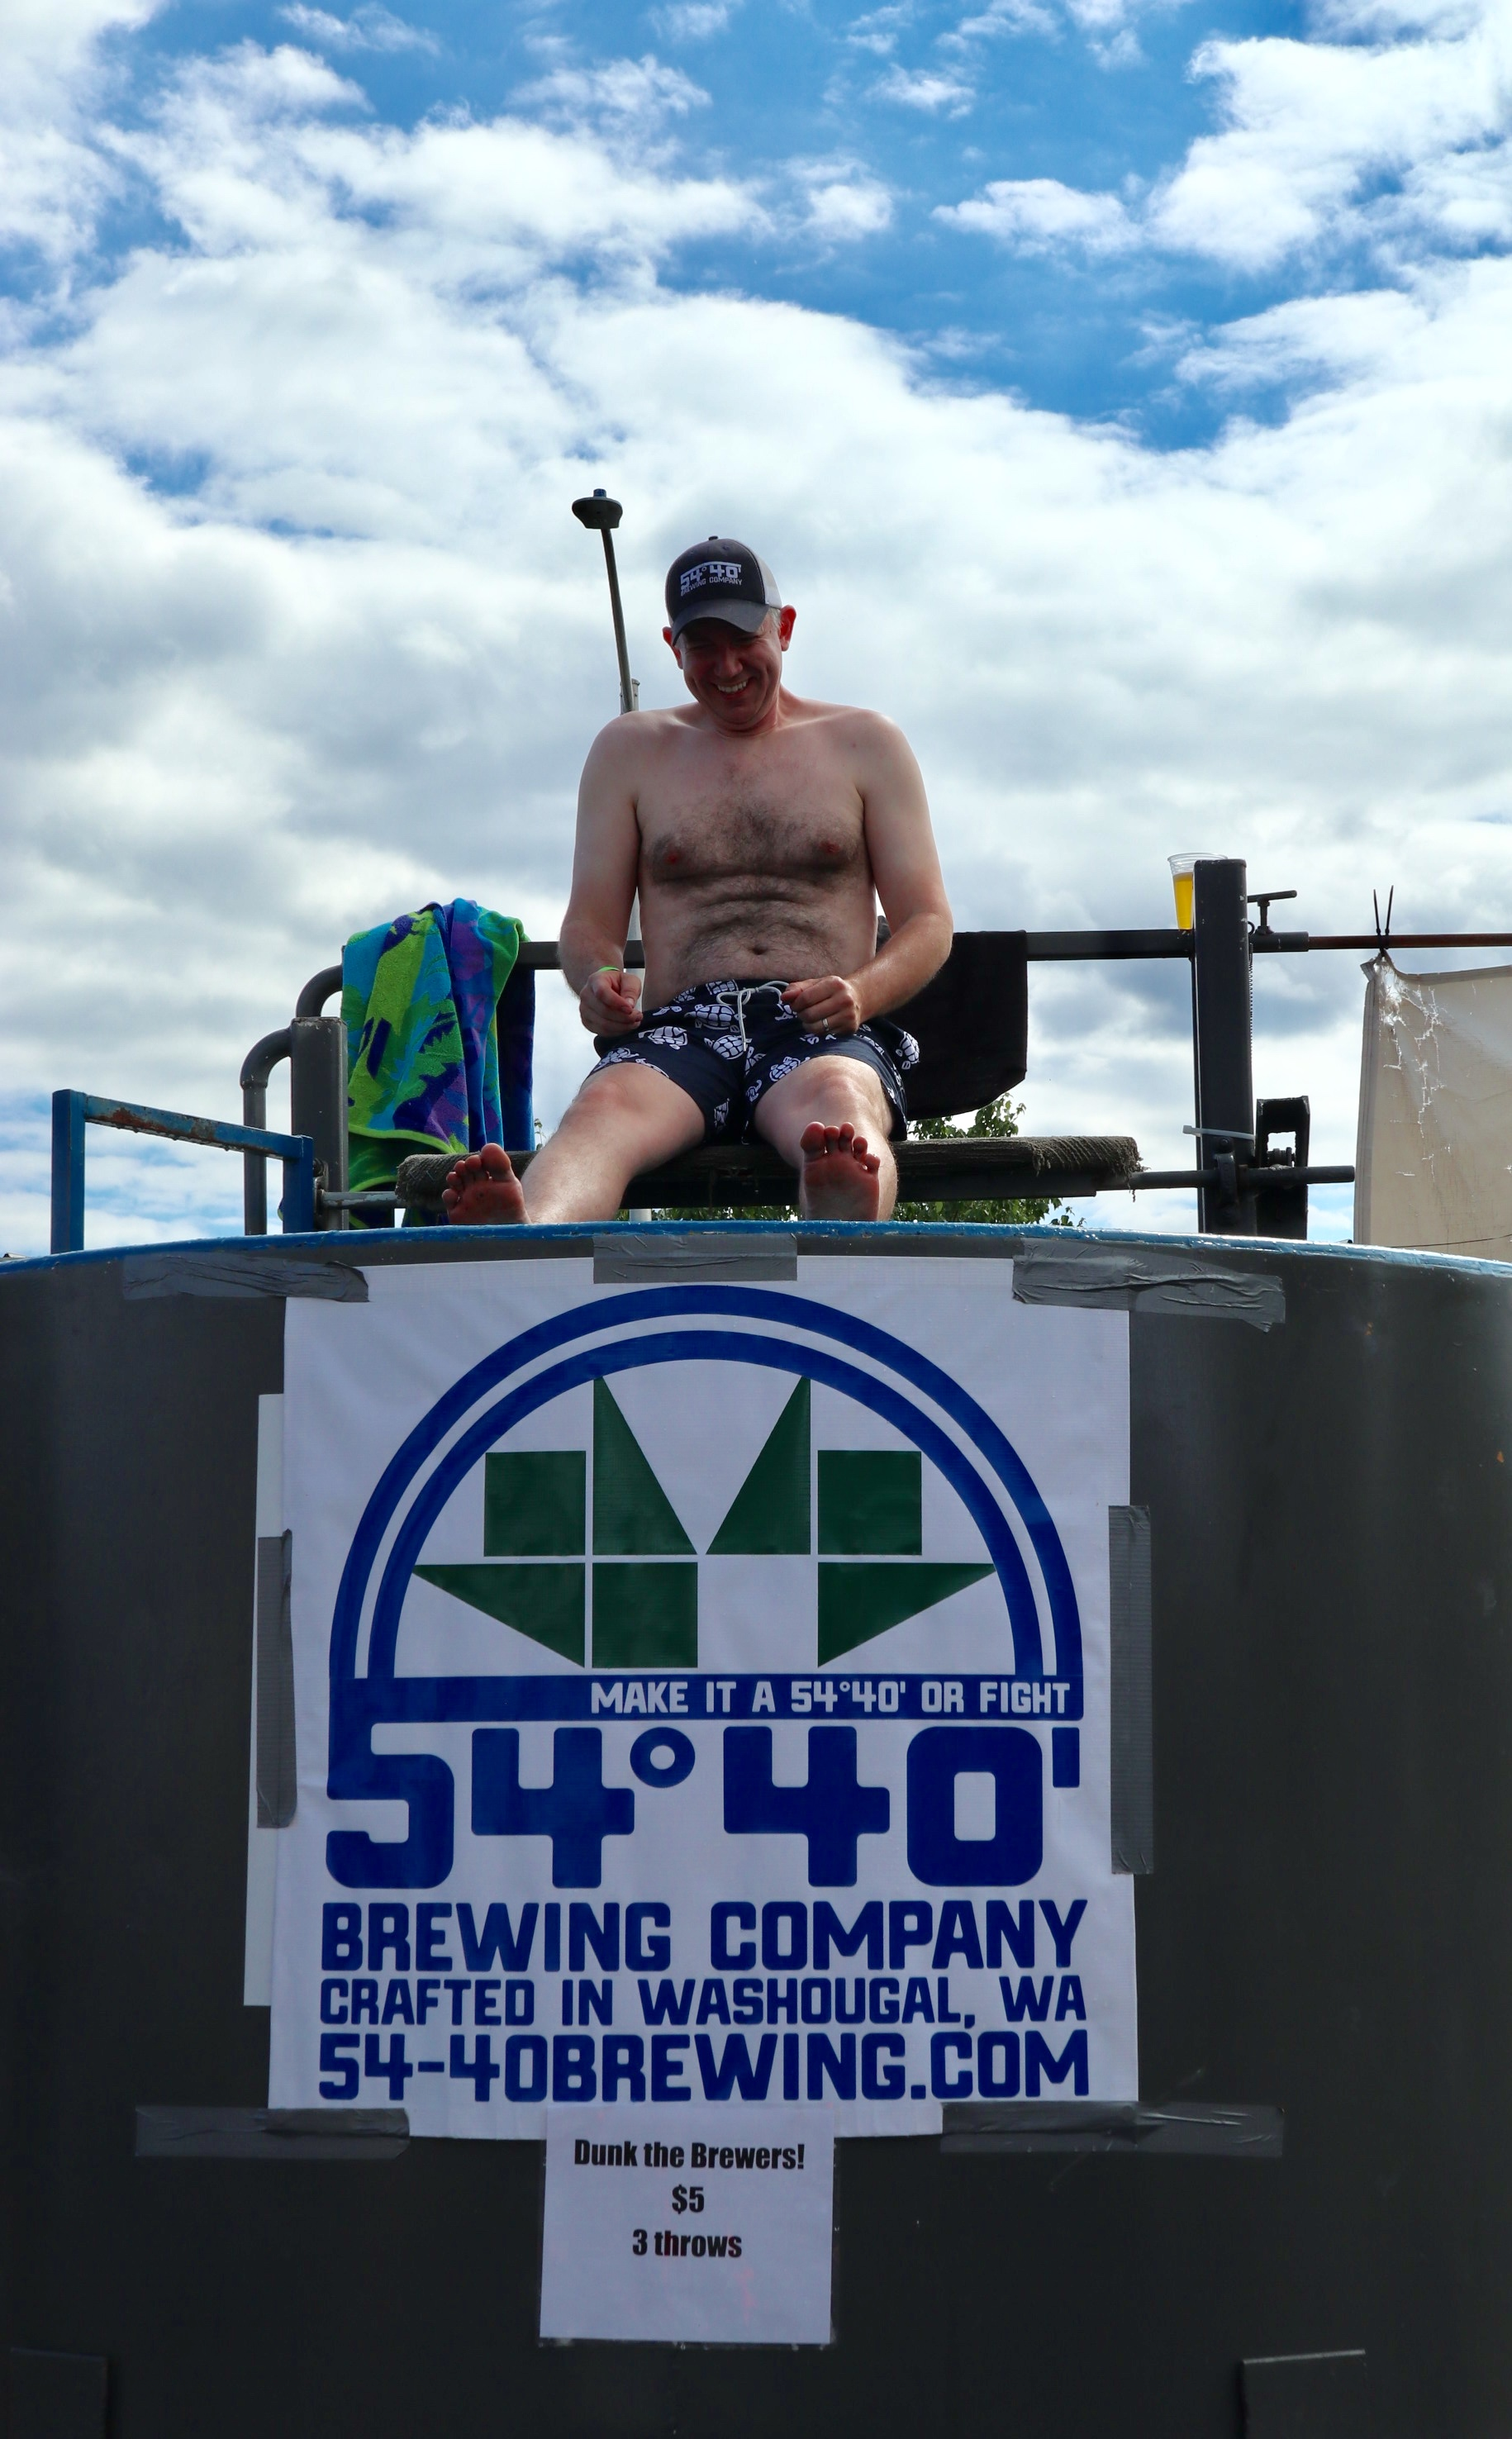 Bolt Minister, owner and brewmaster at 54°40' Brewing Co. in the Brewers Dunk Tank.